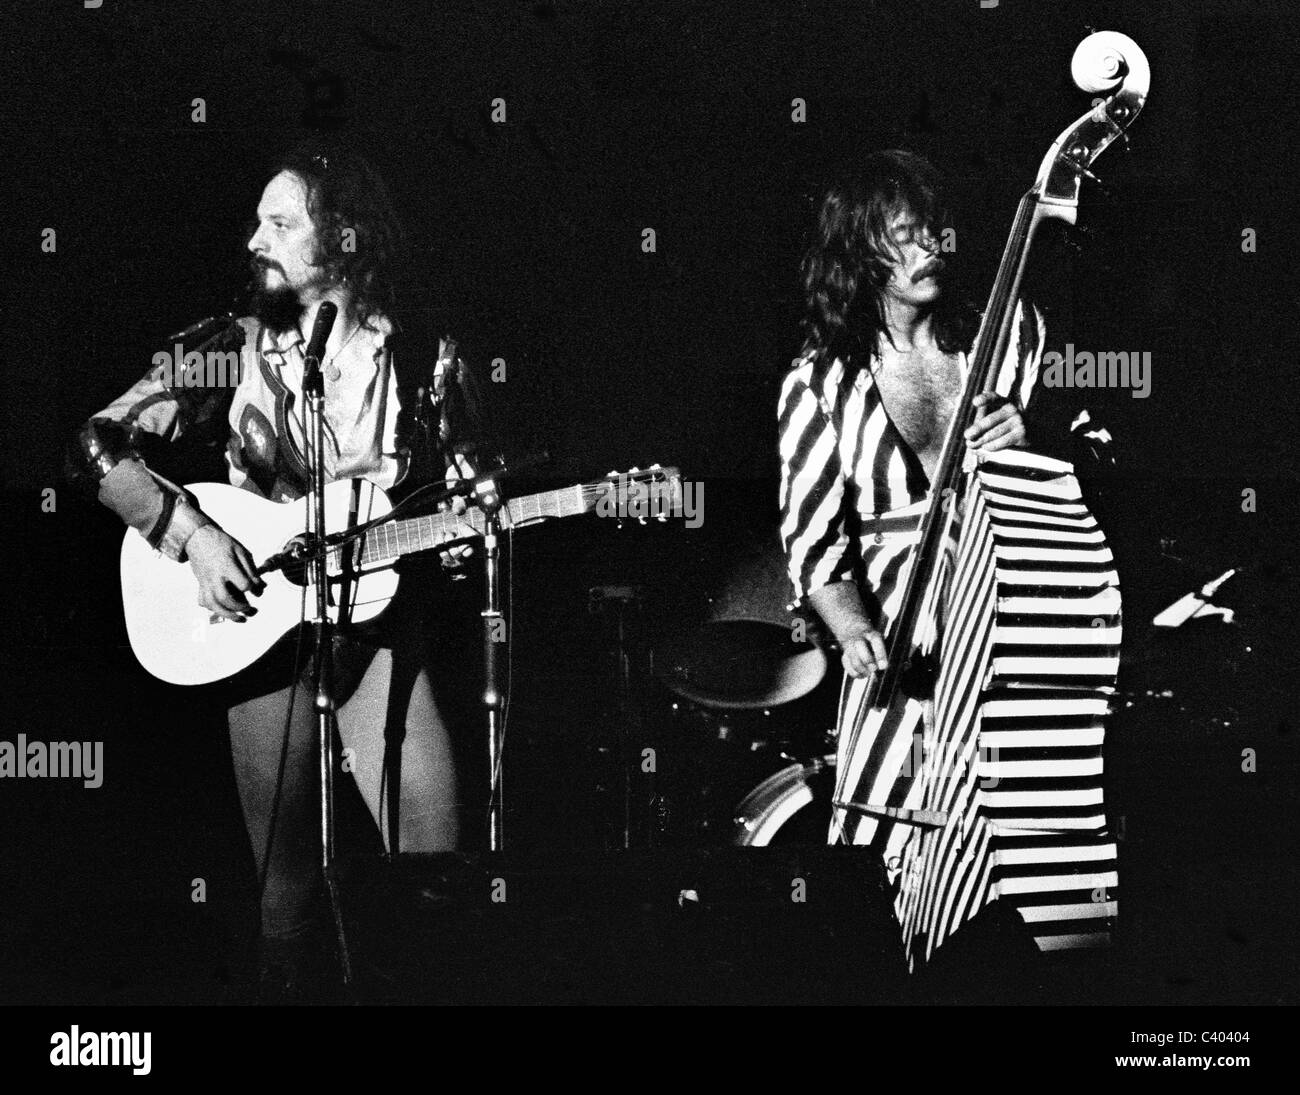 Ian Anderson and Jeffrey Hammond Hammond of Jethro Tull perform on stage in 1975 - Stock Image